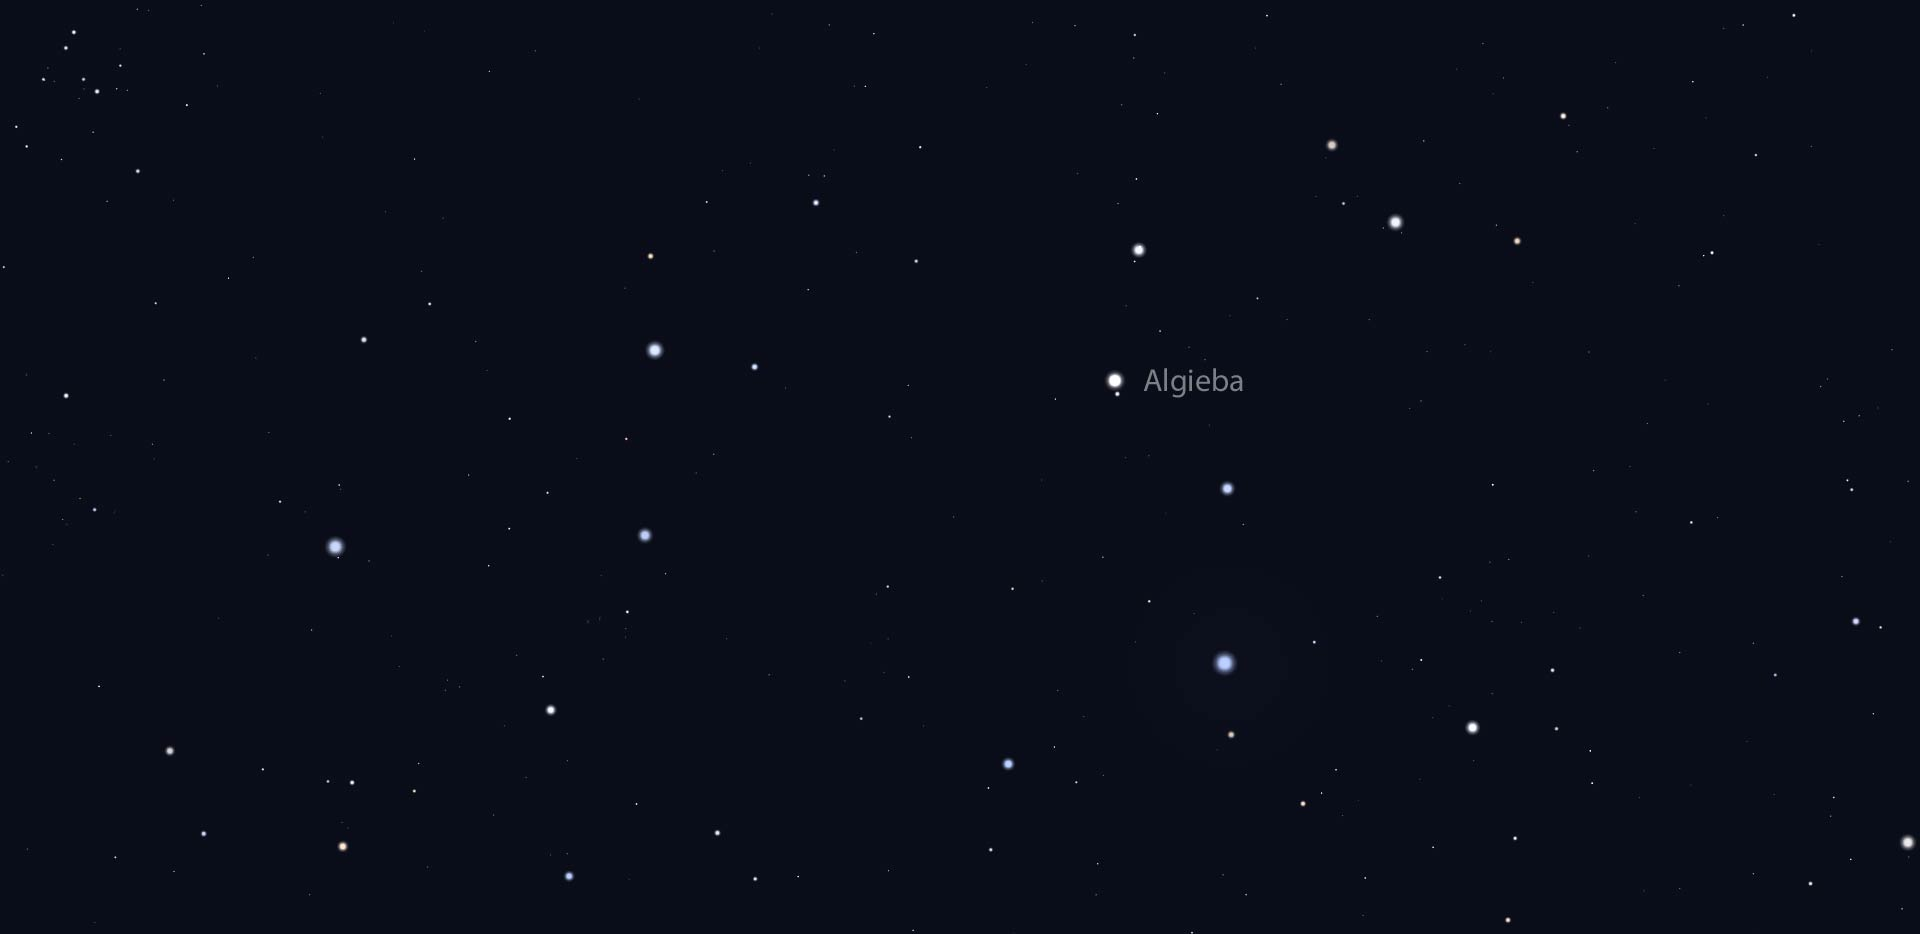 Algieba: Double Star in Leo